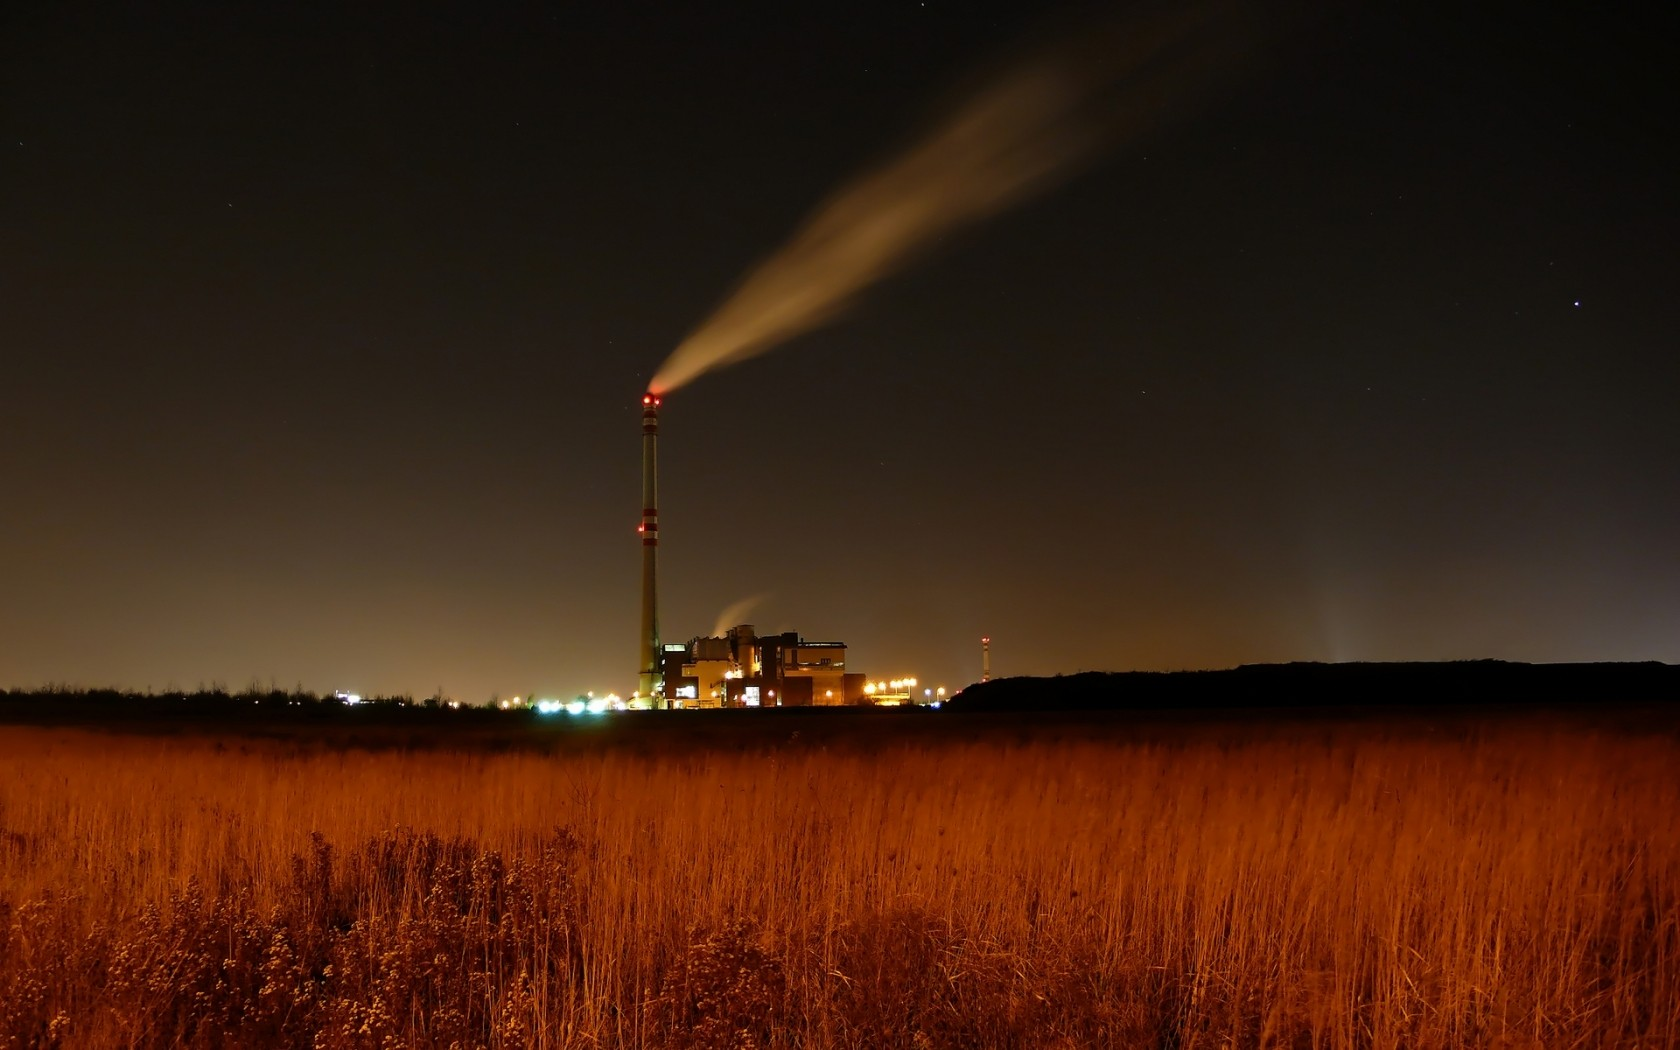 night field lights smoke FACTORY cityscapes HD Wallpaper